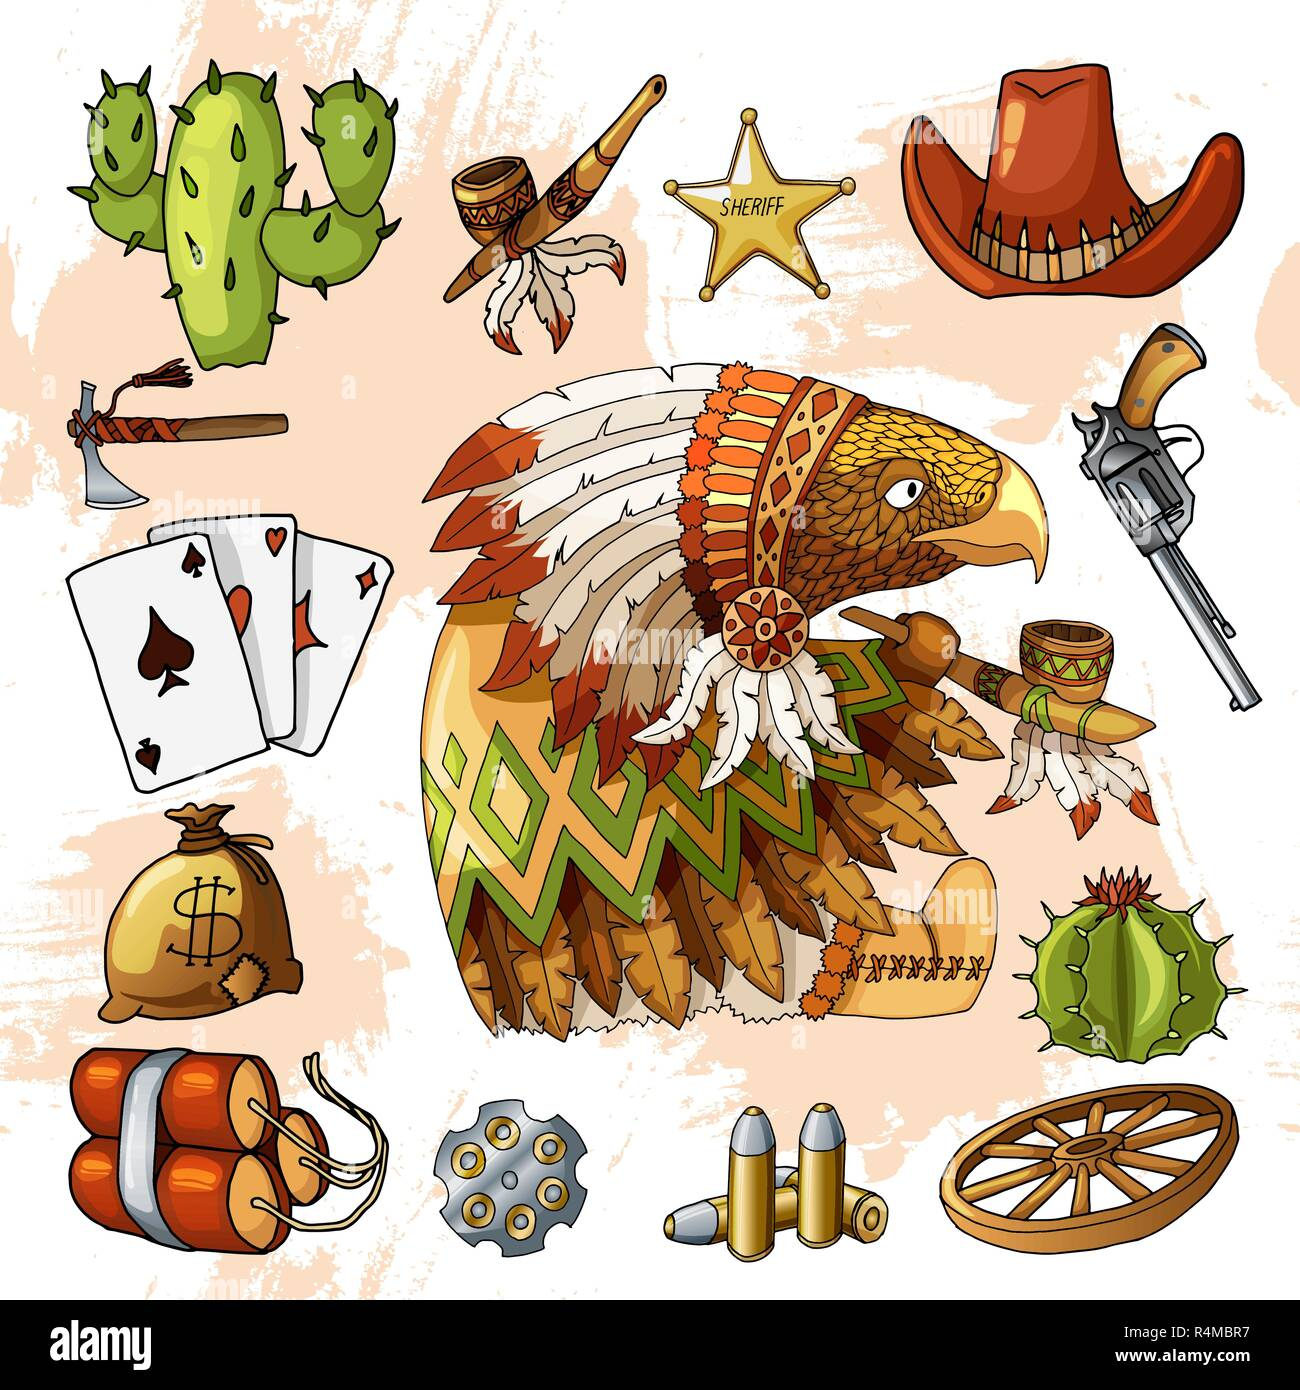 Cartoon character american eagle with set of classic western items design print - Stock Image